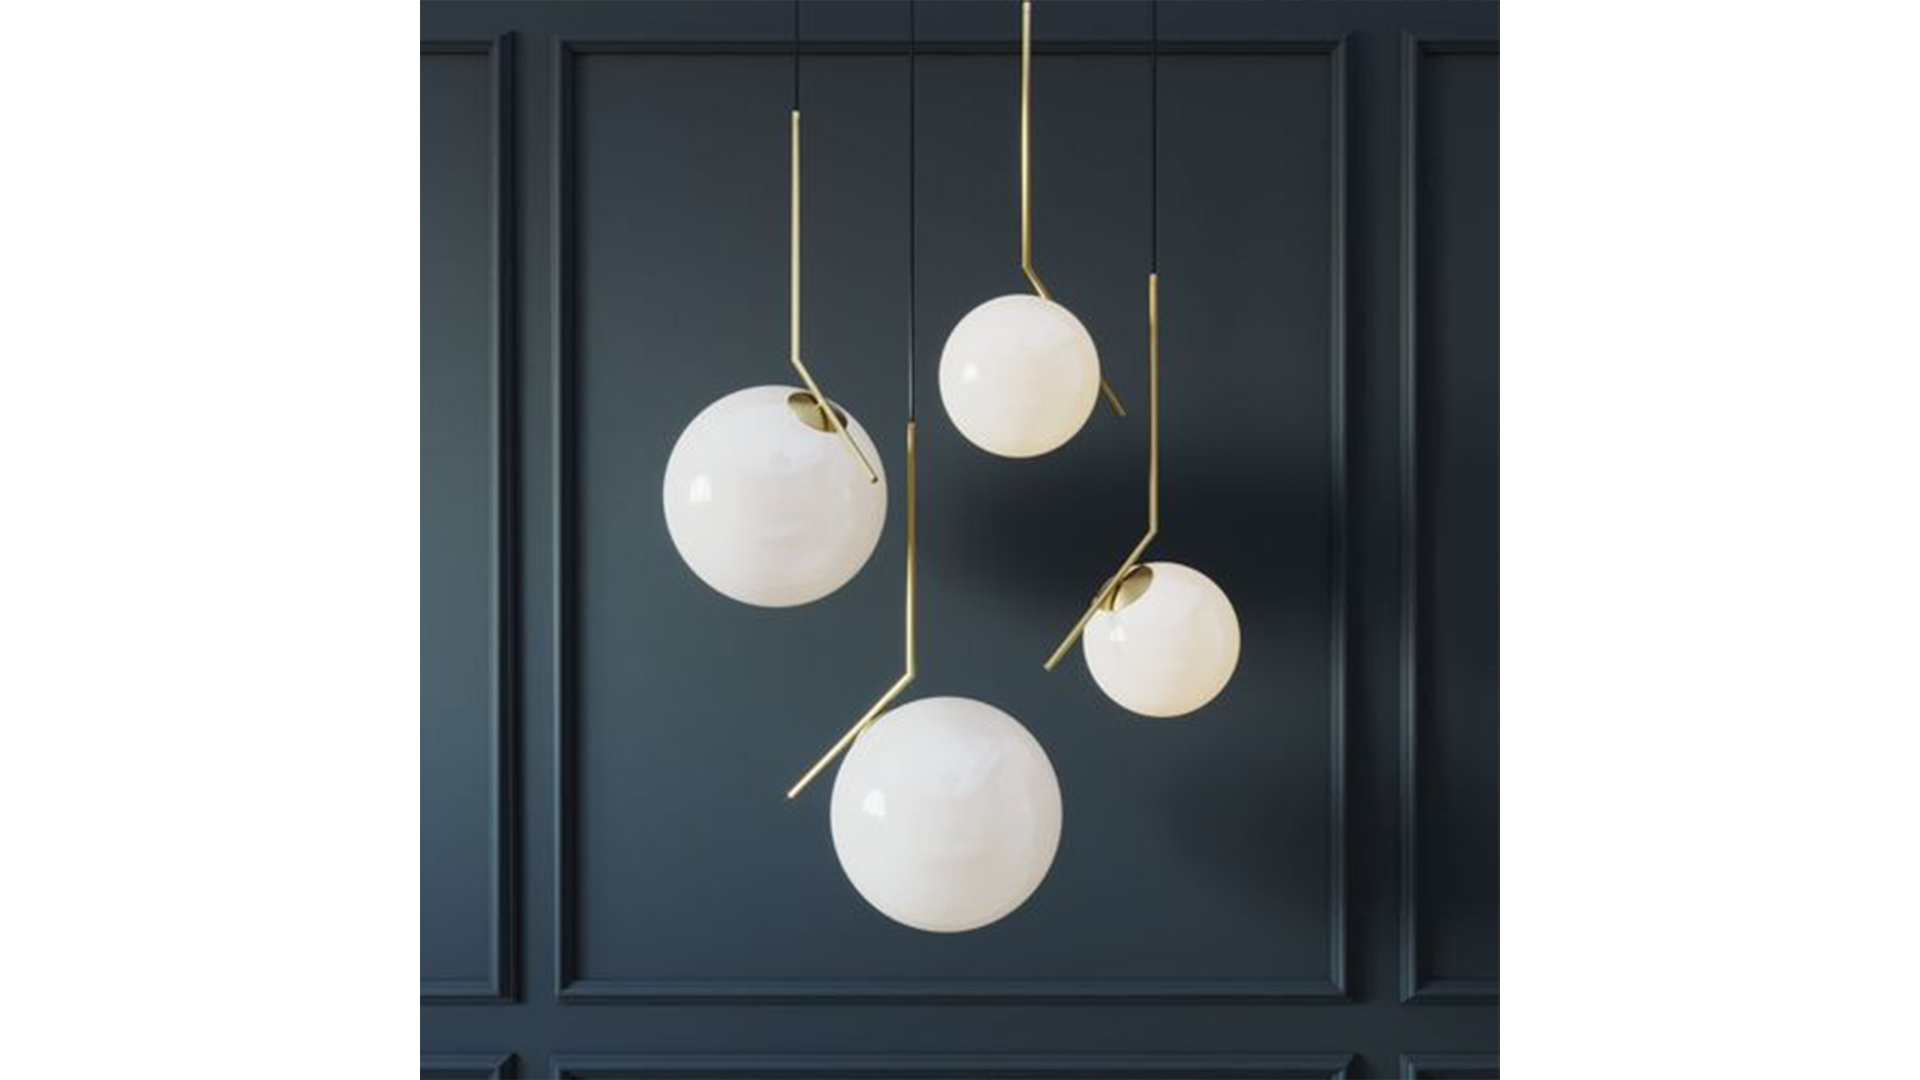 https://estudiopas.com/wp-content/uploads/2019/05/flos-lights-family-michael-anastassiades-pendant-3d-model-max-obj.jpg